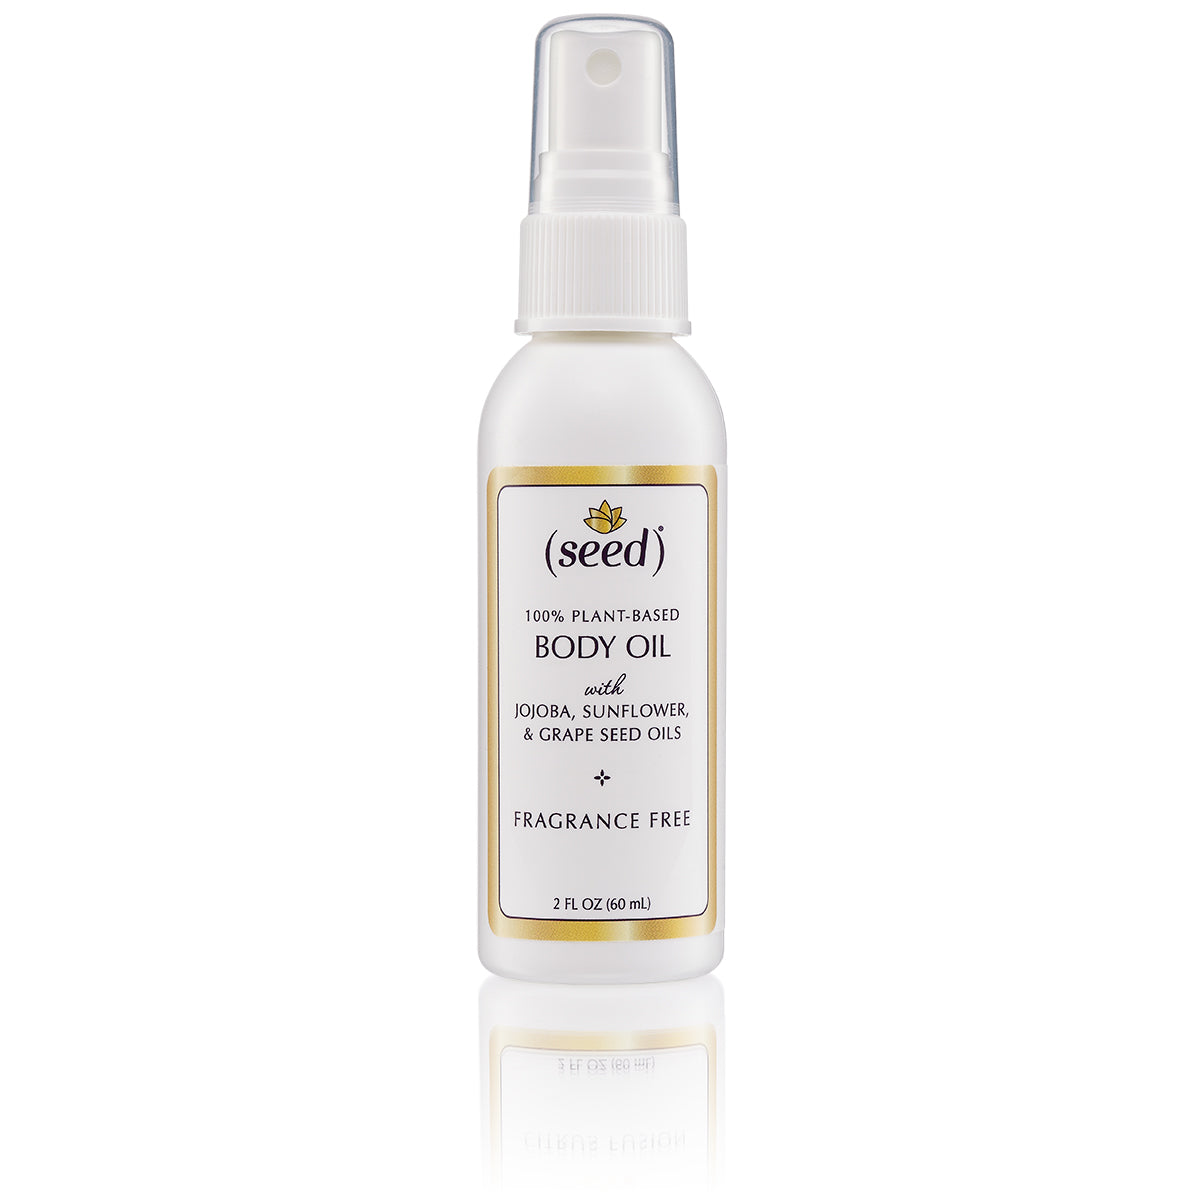 Seed Fragrance Free Body Oil is truly fragrance free